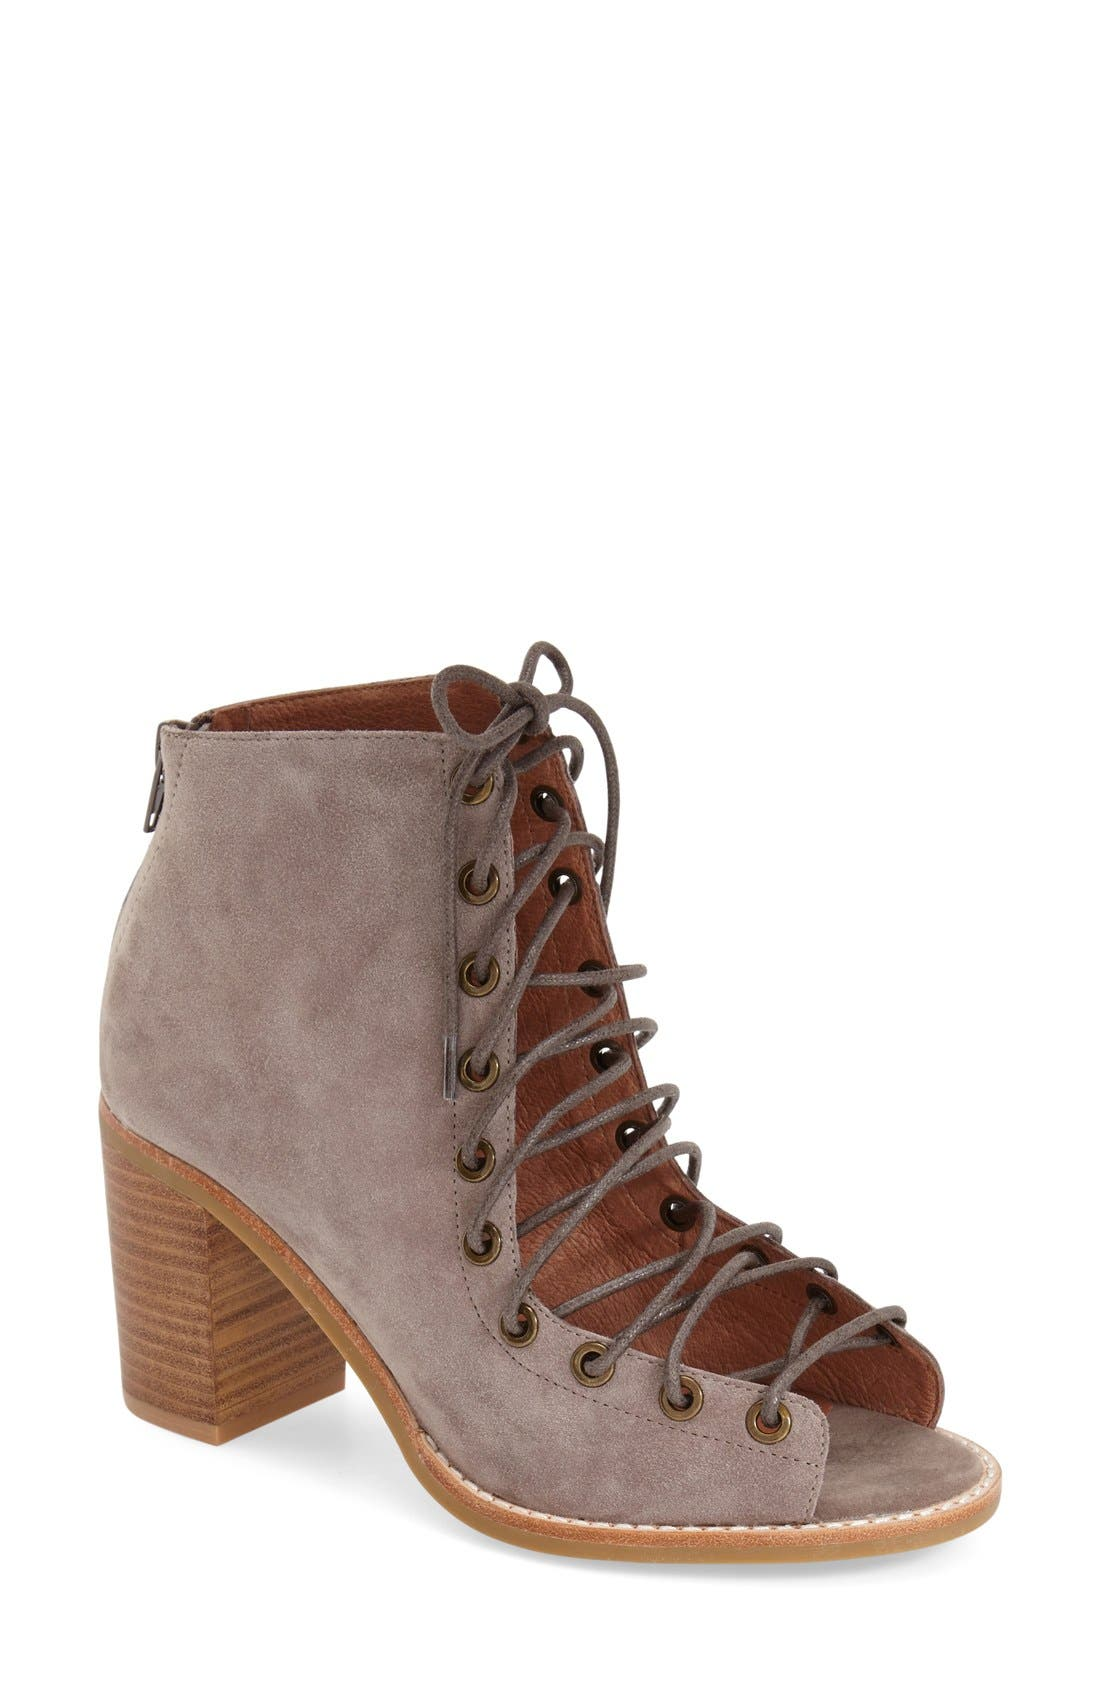 Main Image - Jeffrey Campbell 'Cors' Suede Peep Toe Bootie (Women)